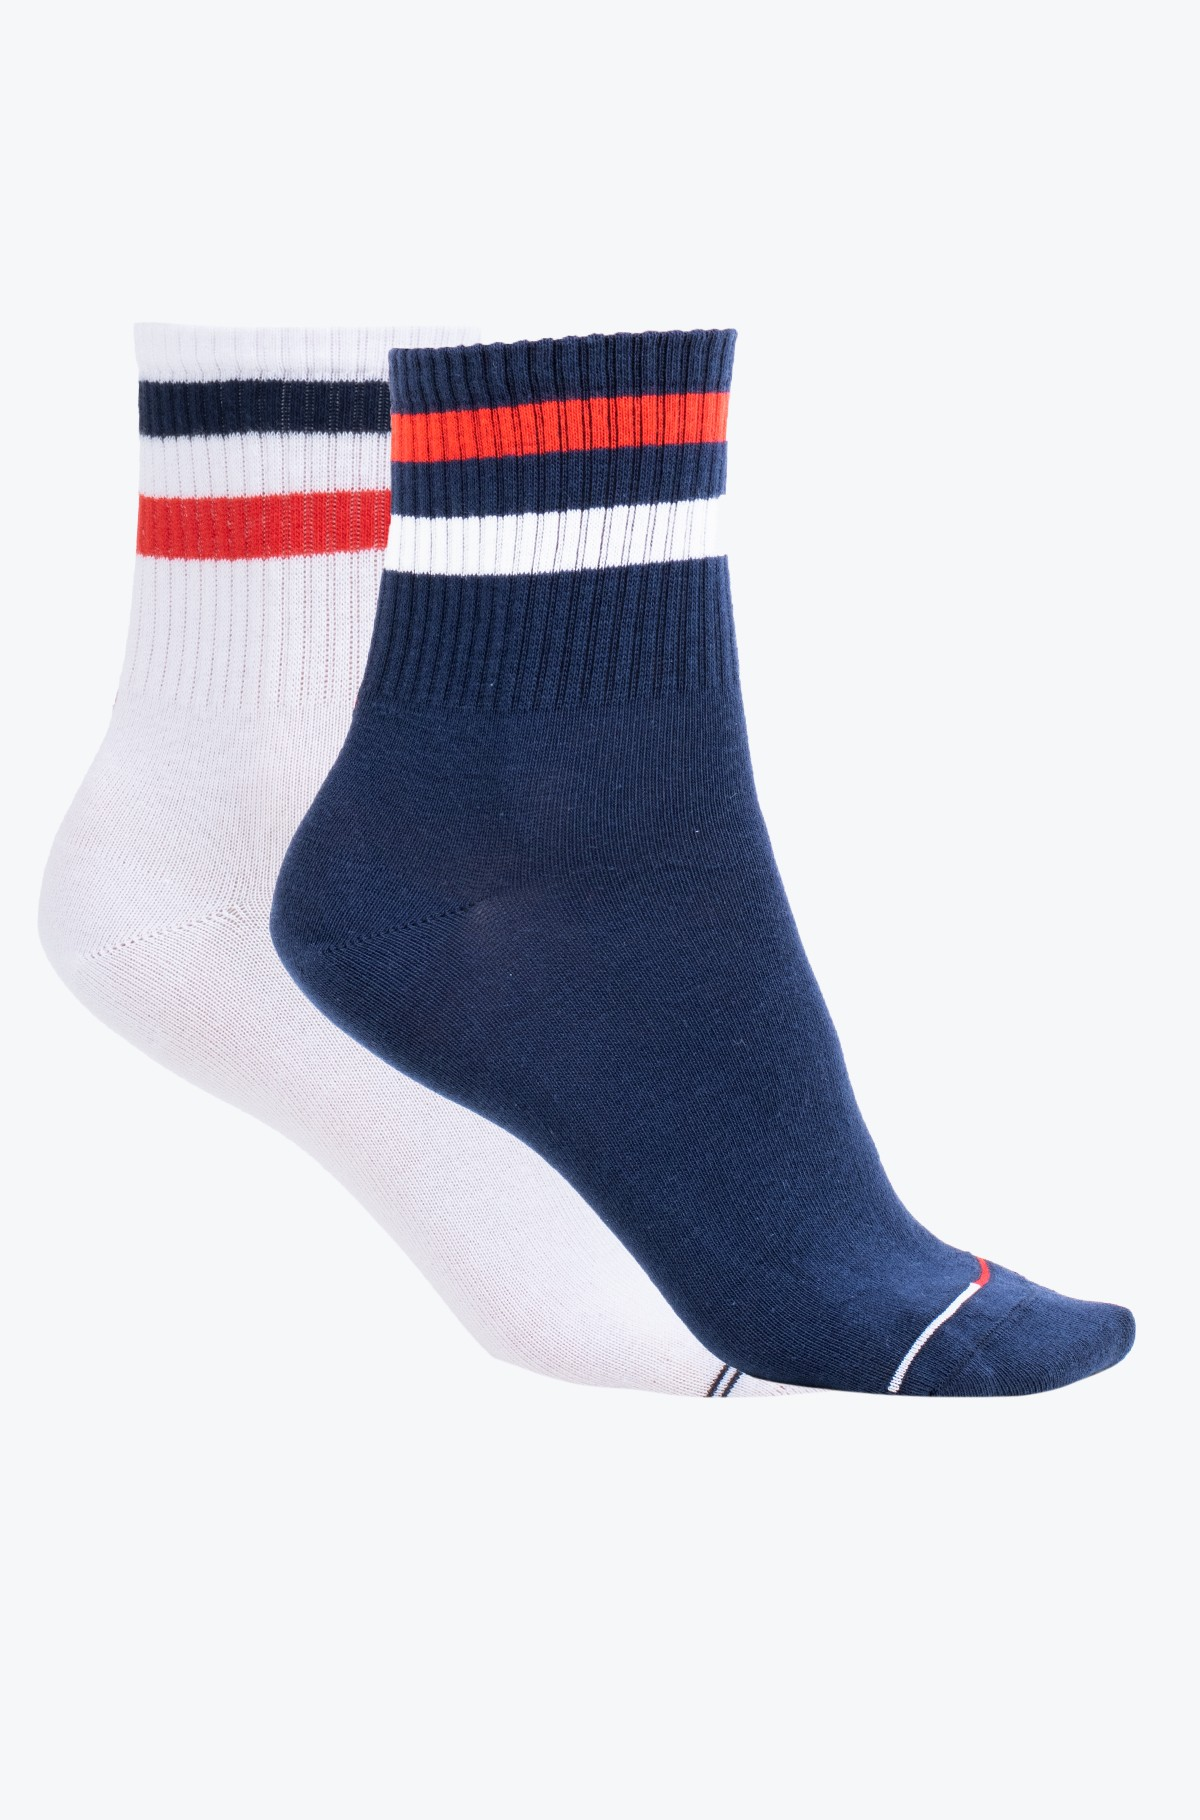 Socks 491006001-full-1